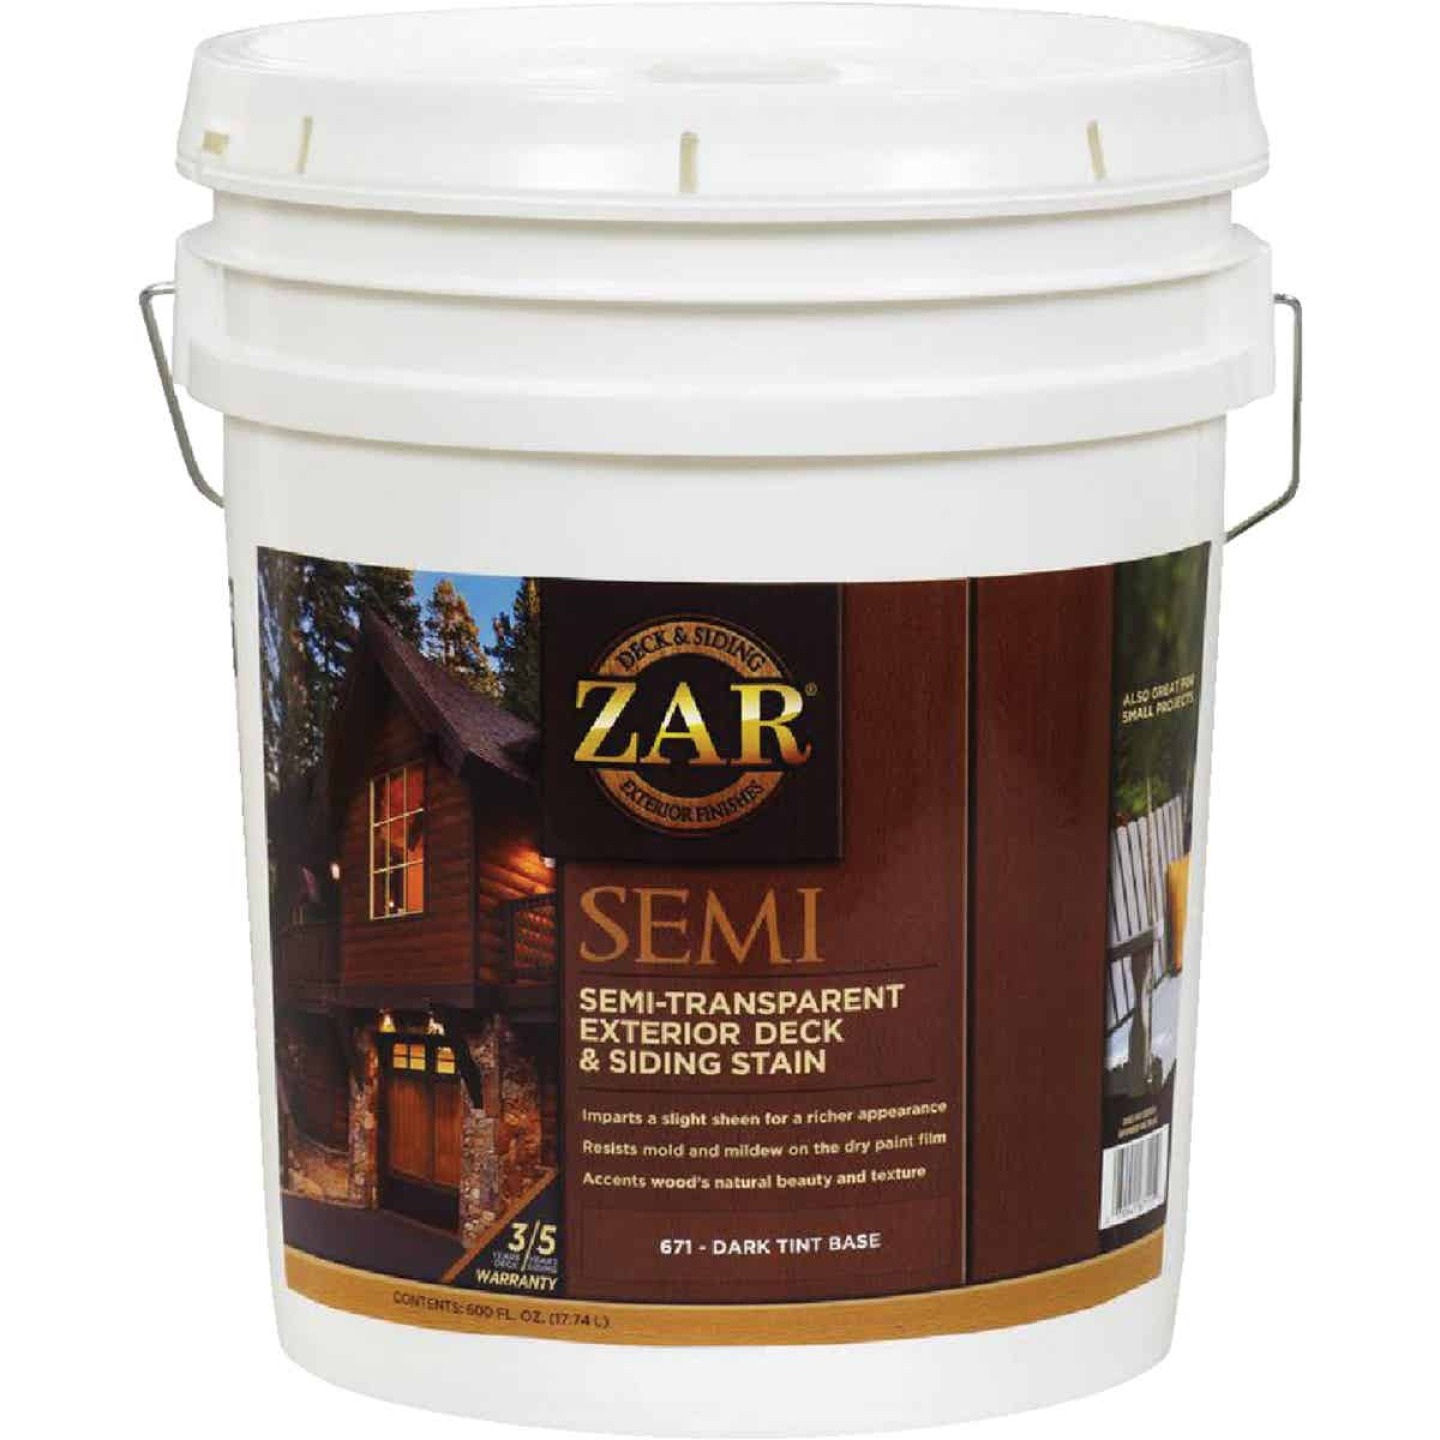 ZAR Semi-Transparent Exterior Deck & Siding Stain, Dark Tint Base, 5 Gal. Image 1